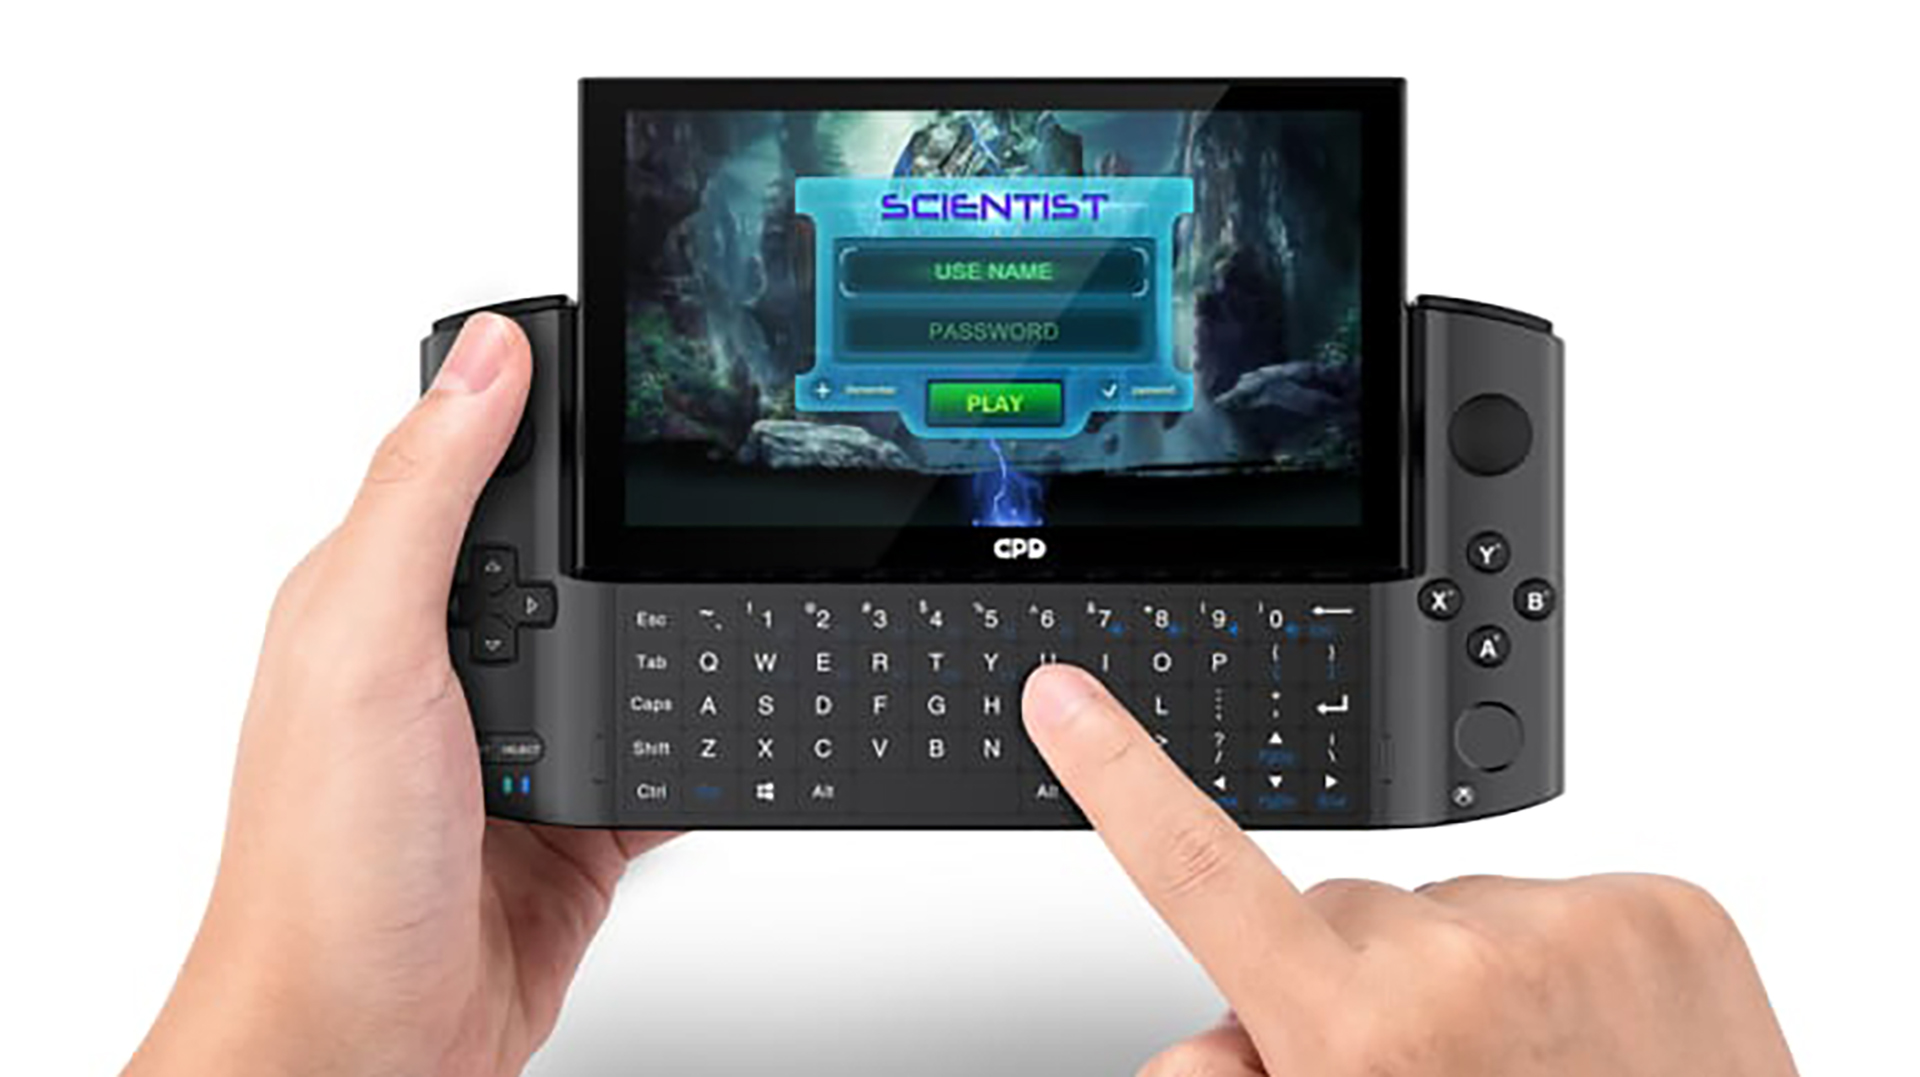 GPD Win 3 handheld gaming console in use